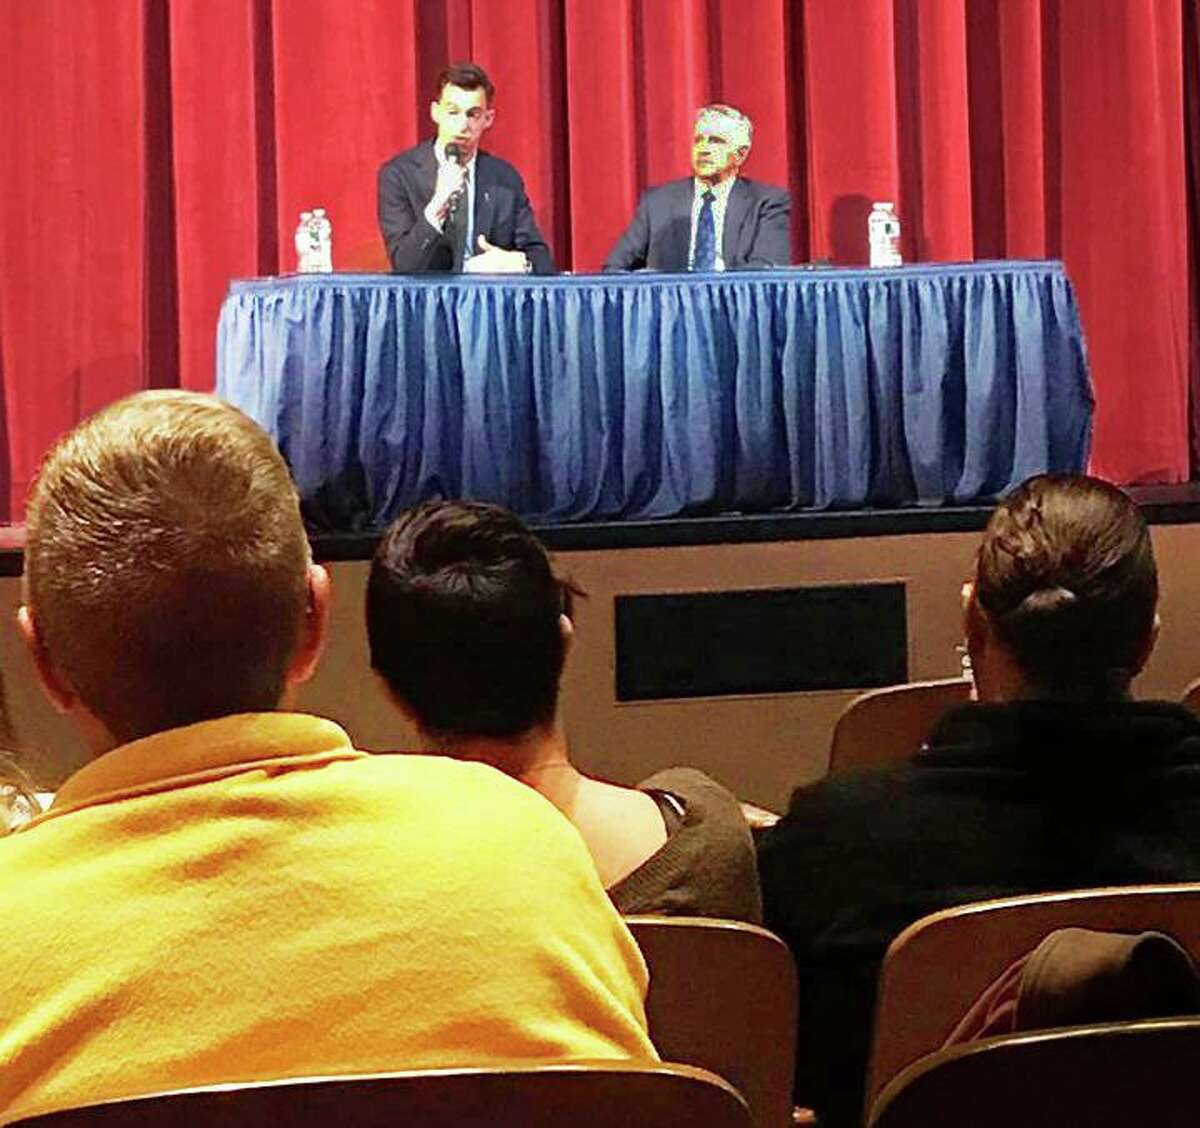 Mayoral candidates Ben Florsheim, left, and Middletown Council Minority Leader Sebastian N. Giuliano, right answer questions during an election forum at Middletown High School.